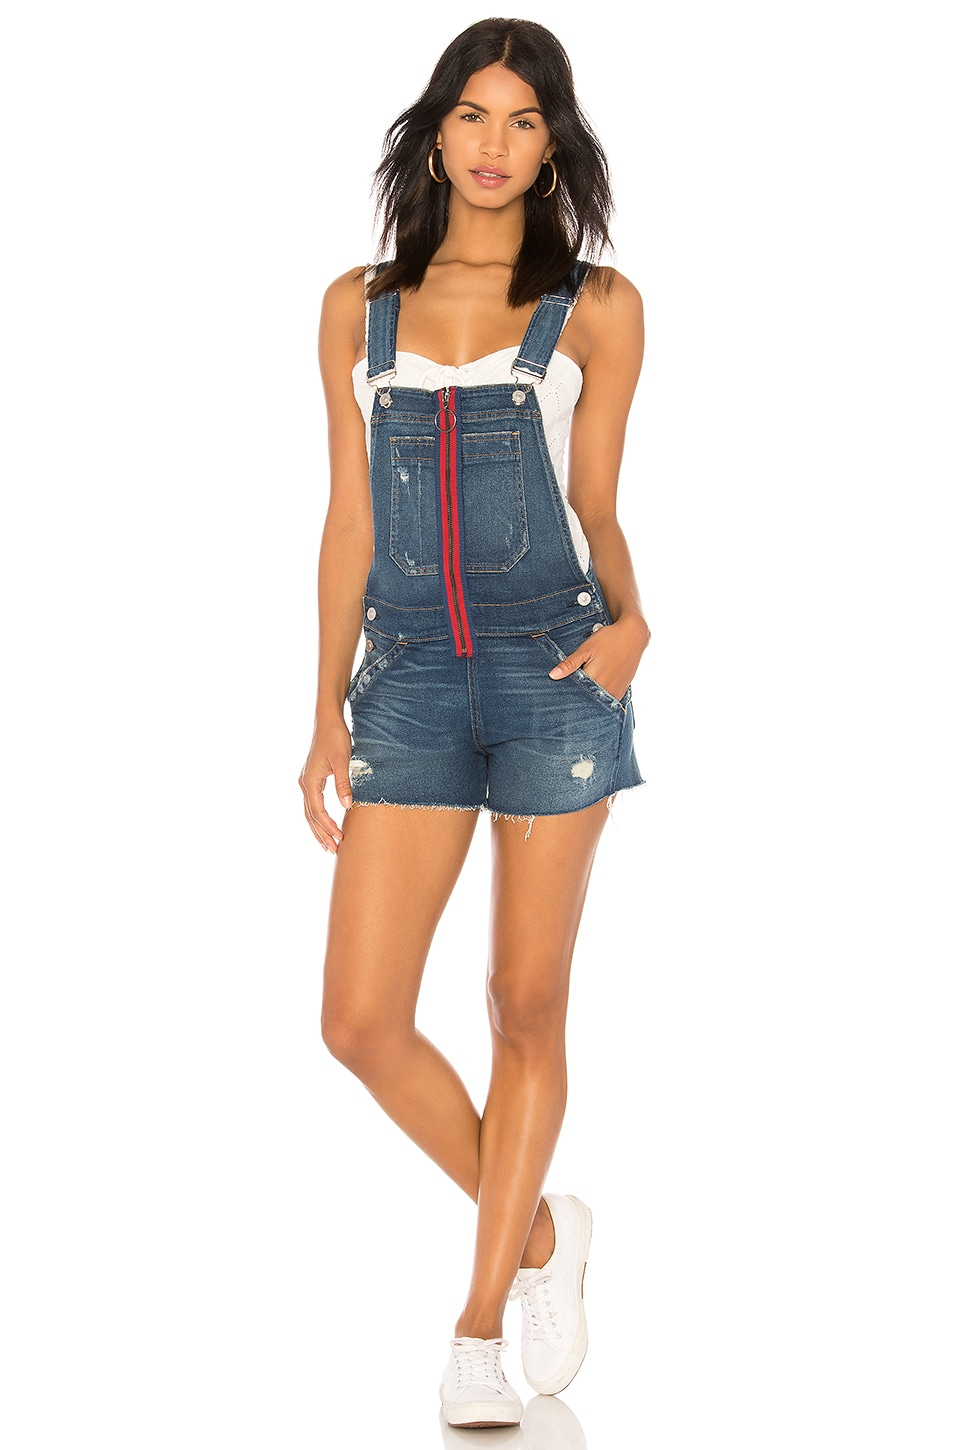 Hudson Jeans Joey Overall in War Paint